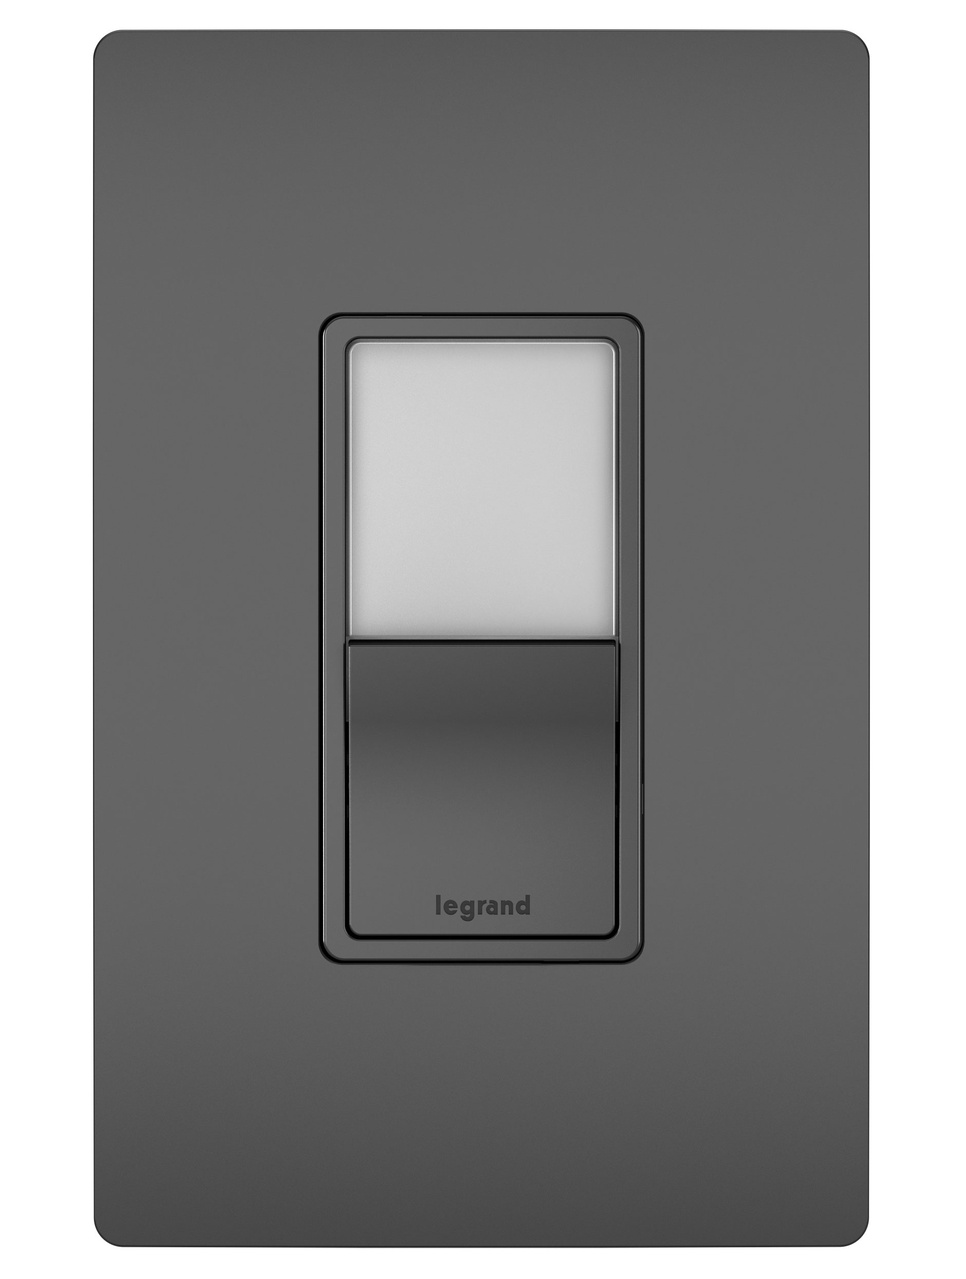 radiant® two single pole 3 way switches black legrand night light single pole 3 way switch black